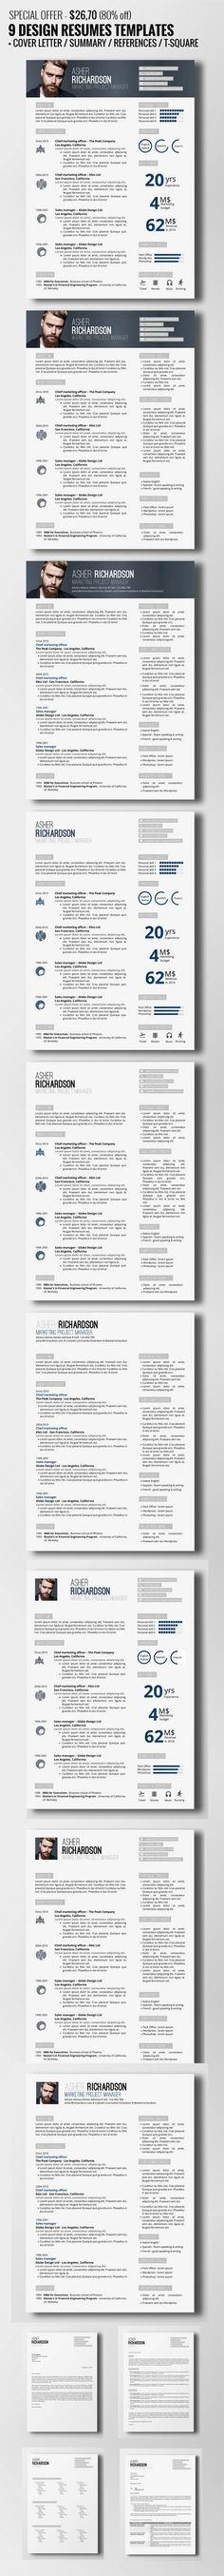 435 best Resume images on Pinterest Resume design, Design resume - Modern Resume Styles